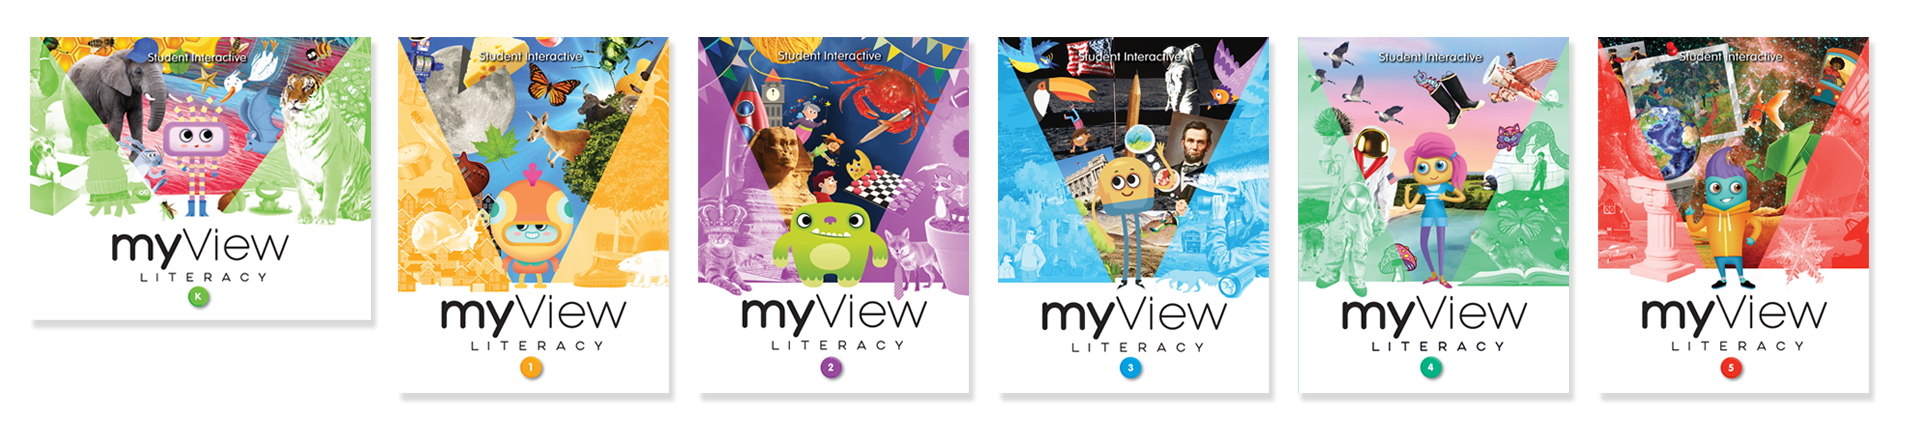 The full array of Pearson myView Literacy: K-5 program covers.